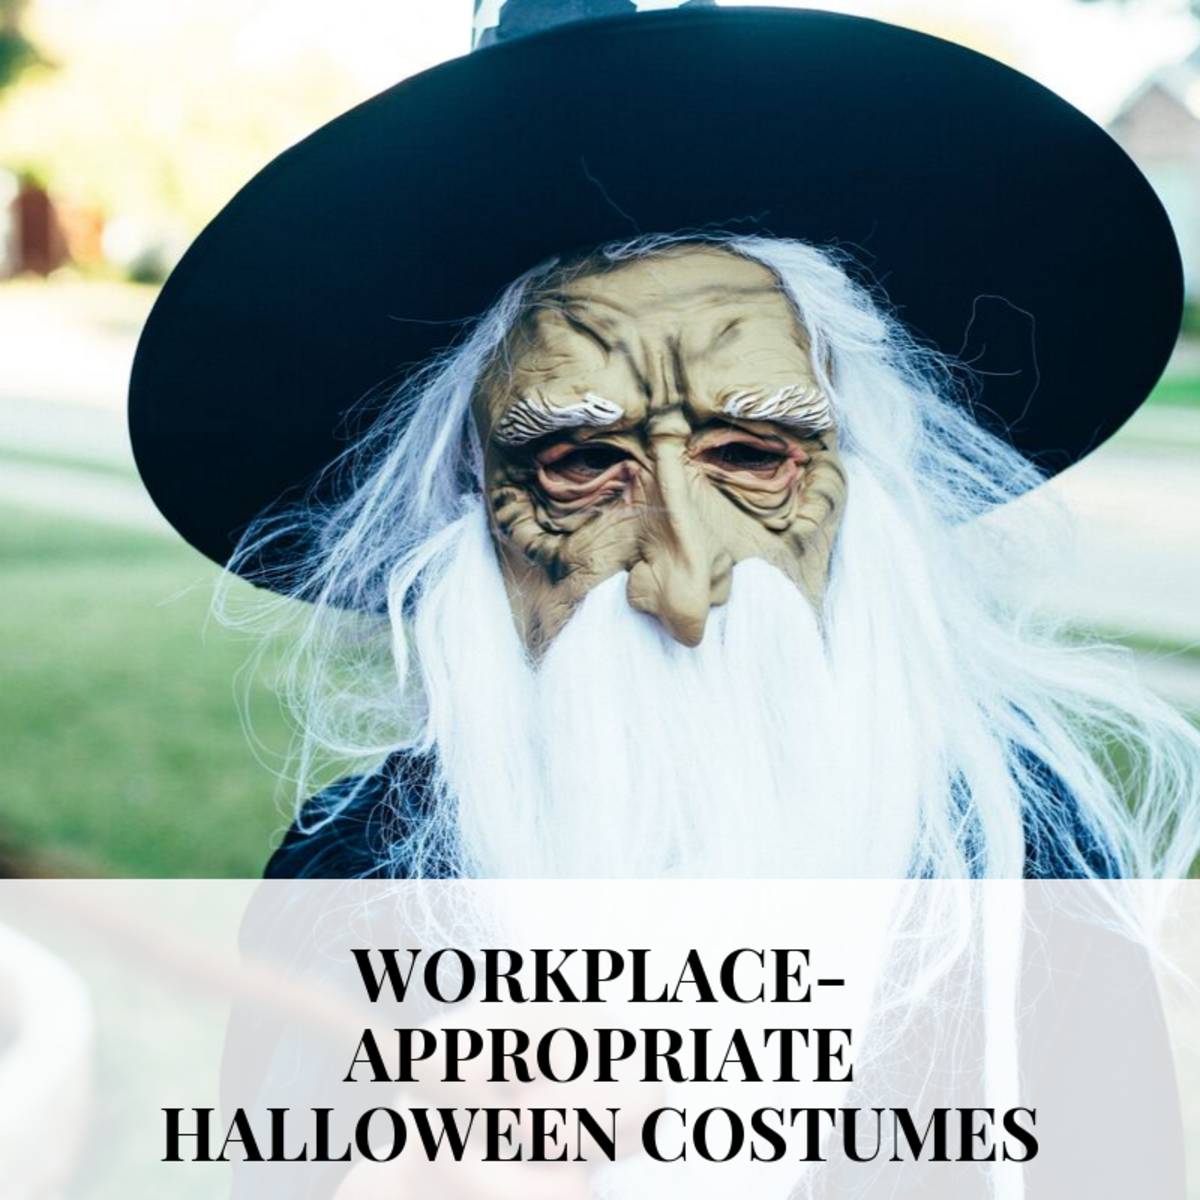 Halloween Costume Ideas That Are Appropriate to Wear to Work